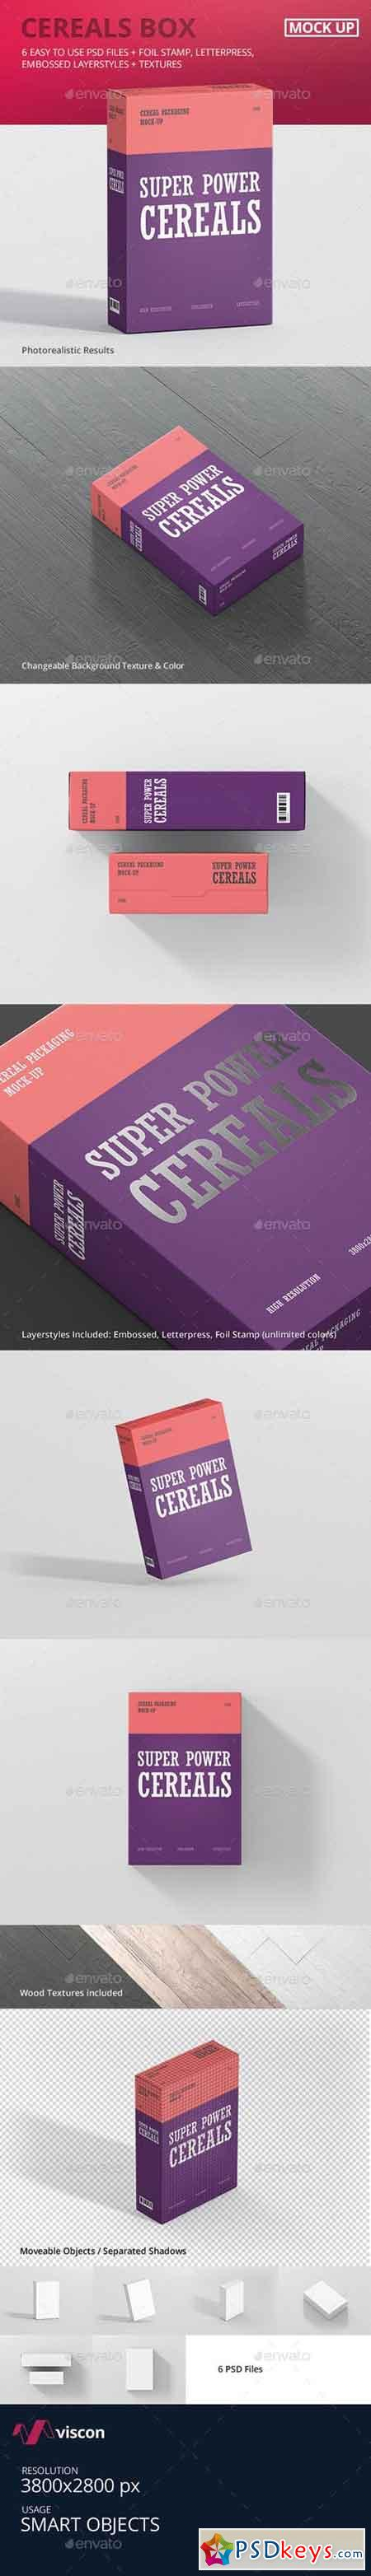 Cereals are good for kids and also for adults on the go and need a quick meal. Cereals Box Mockup 20259461 Free Download Photoshop Vector Stock Image Via Torrent Zippyshare From Psdkeys Com